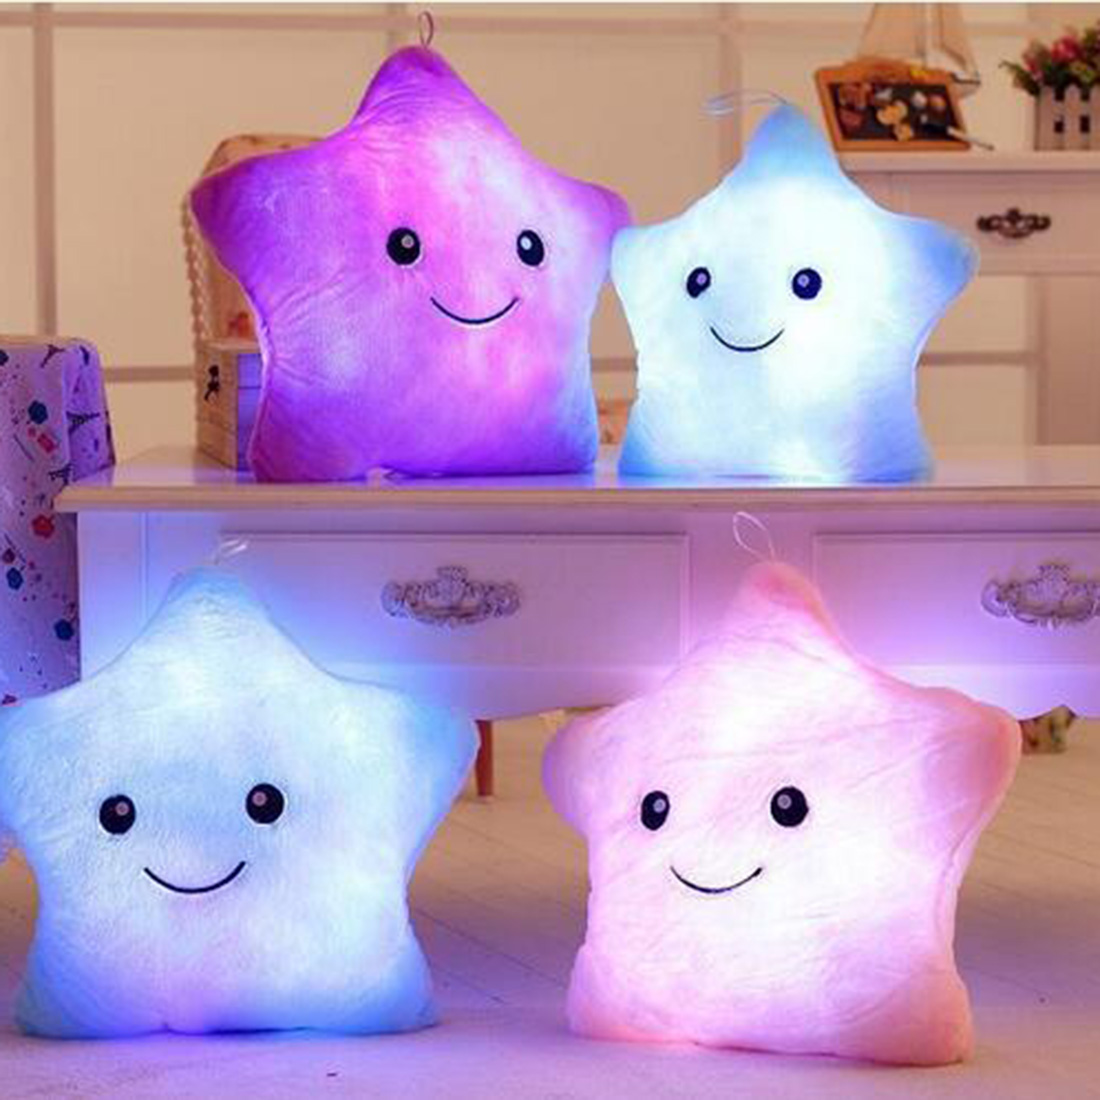 HOt Sale Colorful Body Pillow Star Glow LED Luminous Light Pillow Cushion Soft Relax Gift